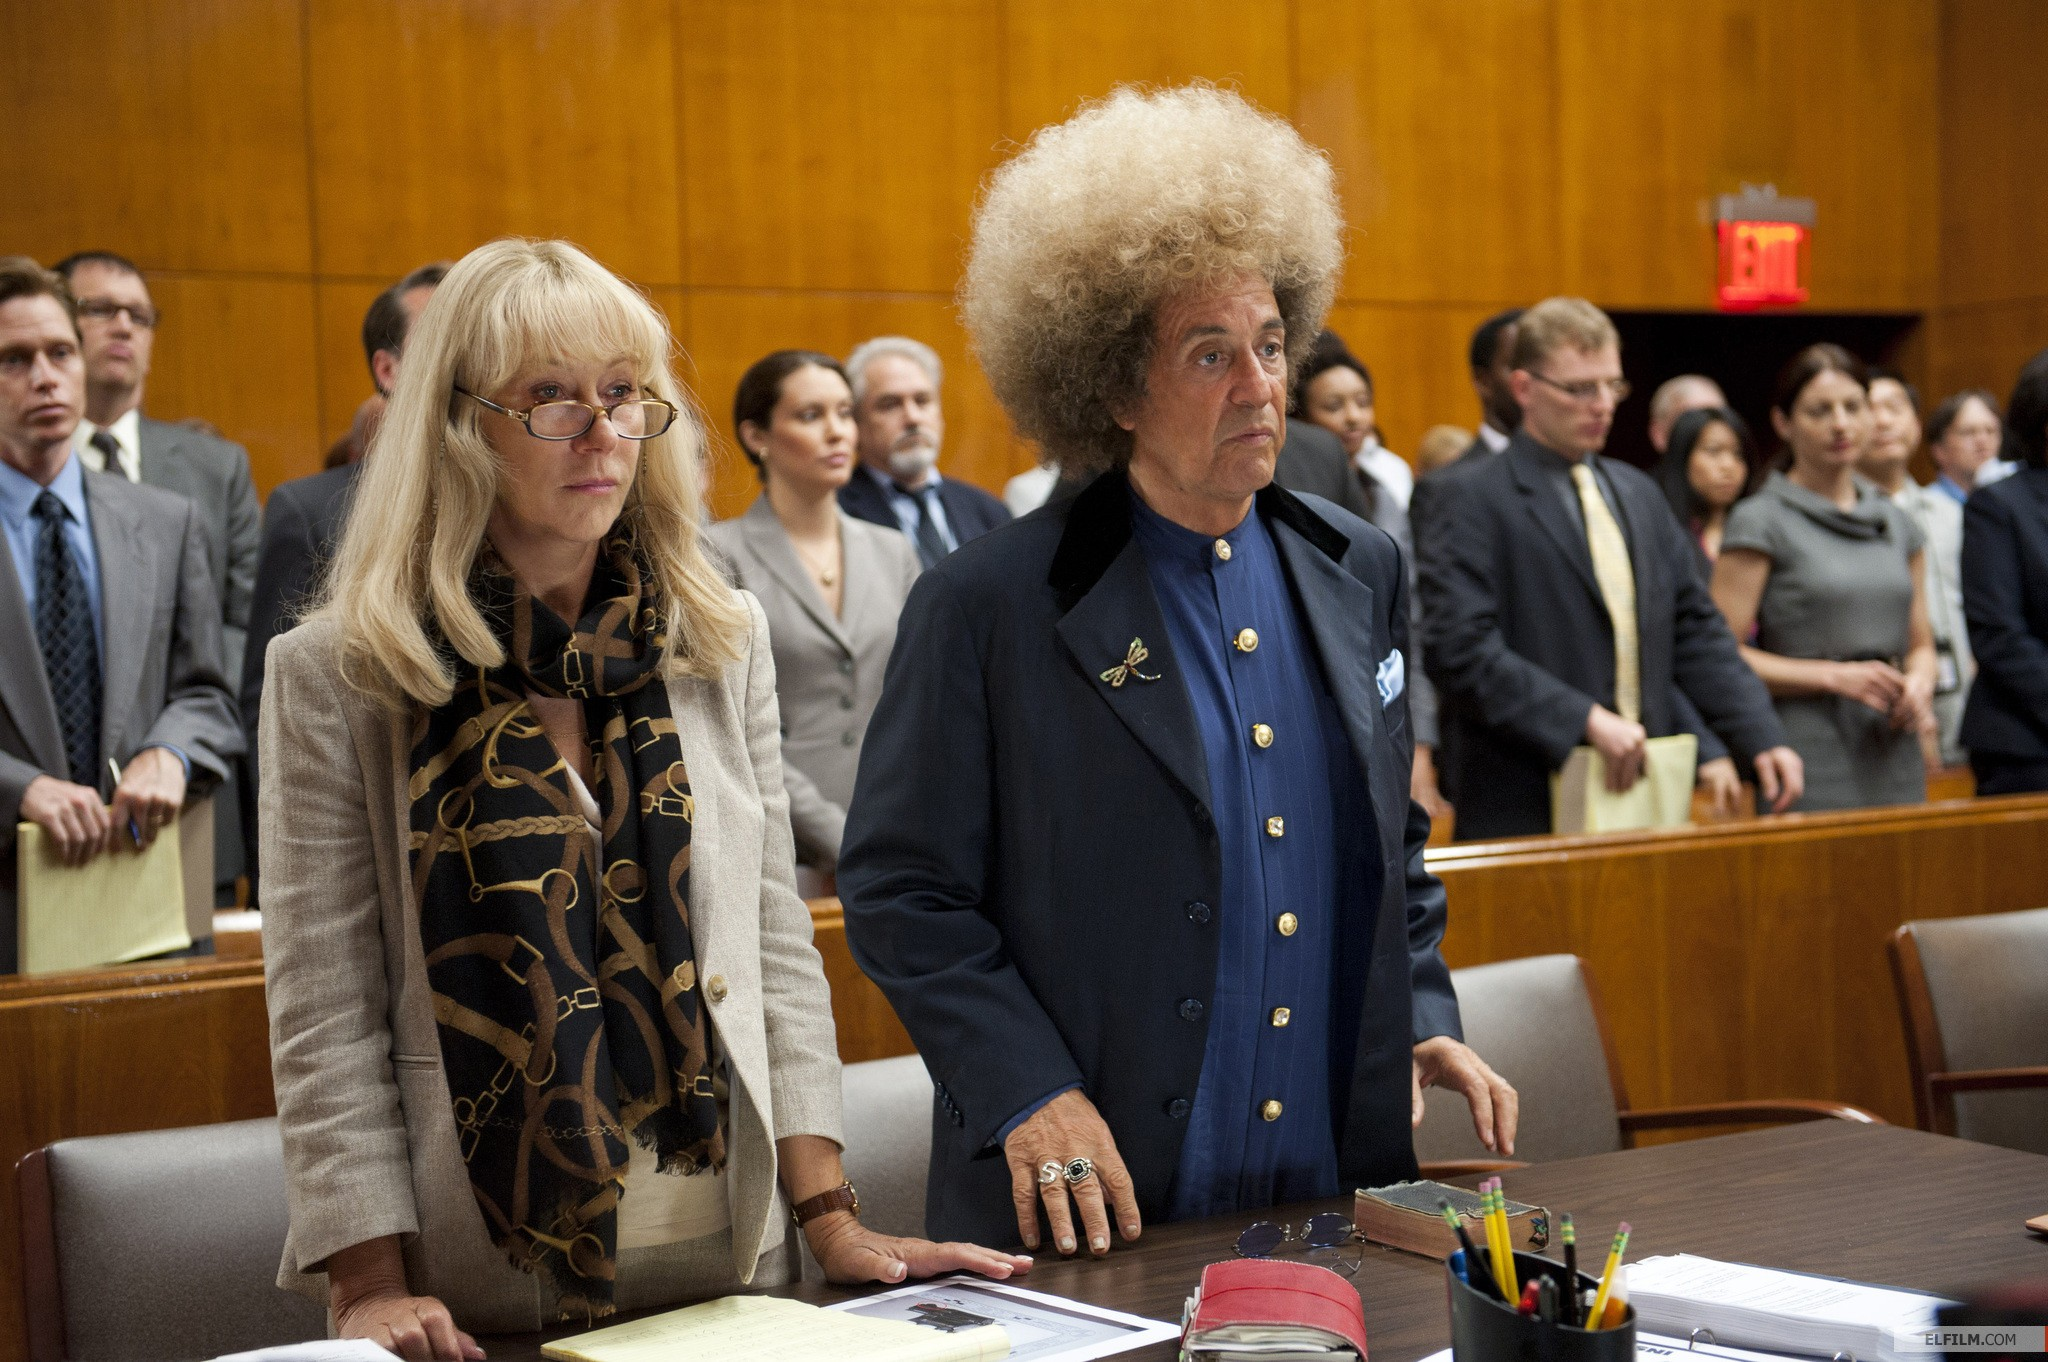 Helen Mirren e Al Pacino caracterizados no telefilme Phil Spector, do diretor David Mamet (photo by www.elfilm.com)